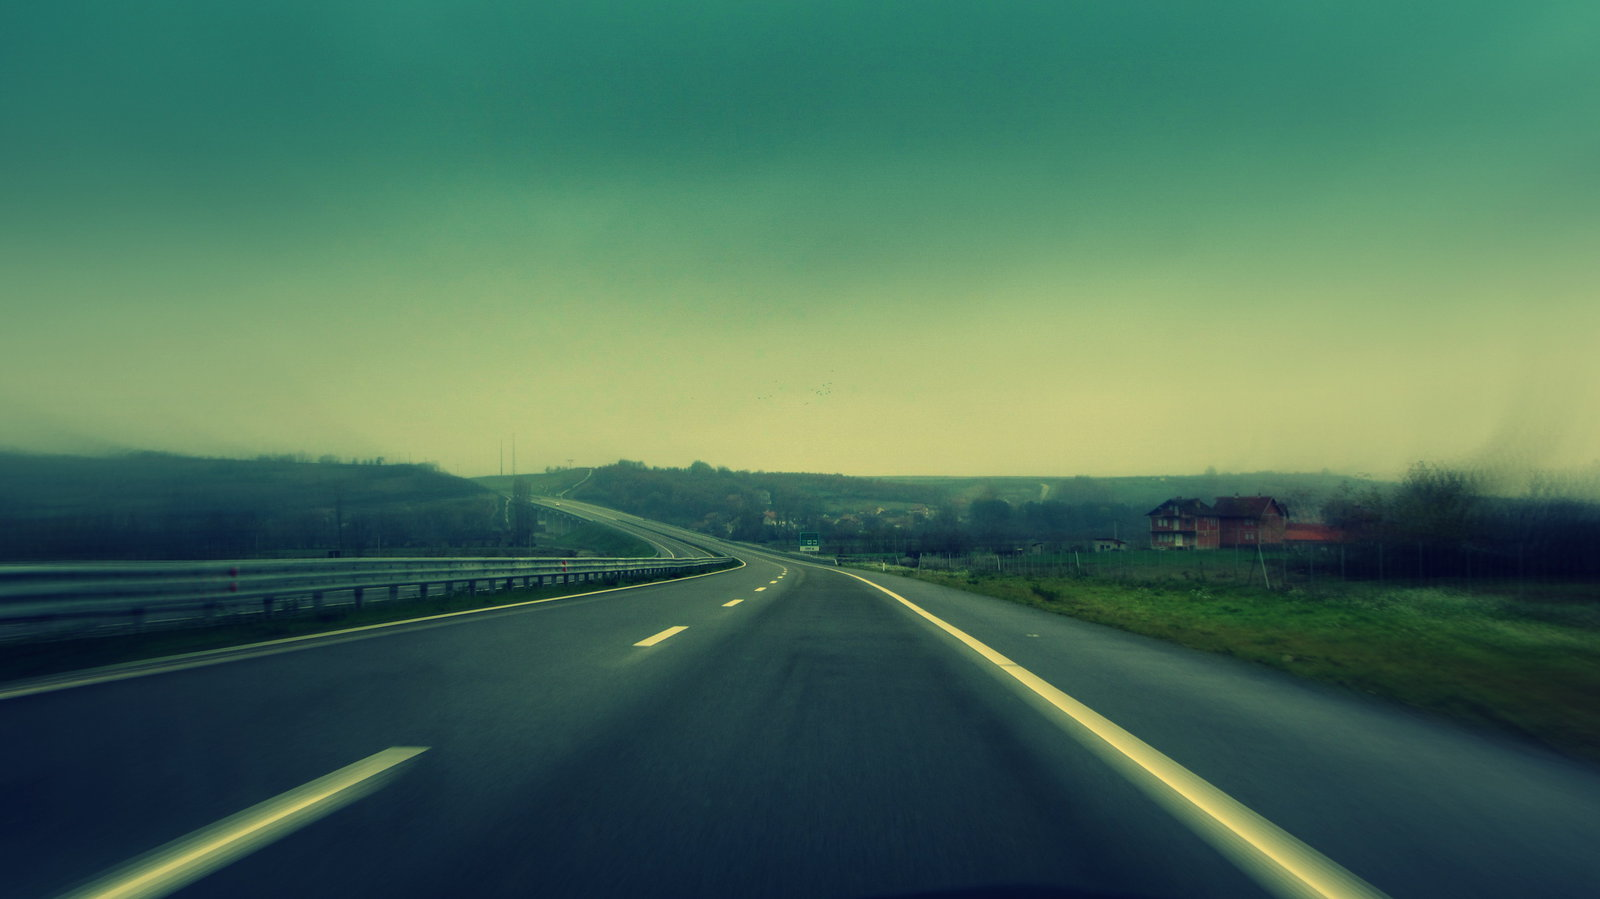 on_the_road_by_v_tgr-d6vtdrw.jpg